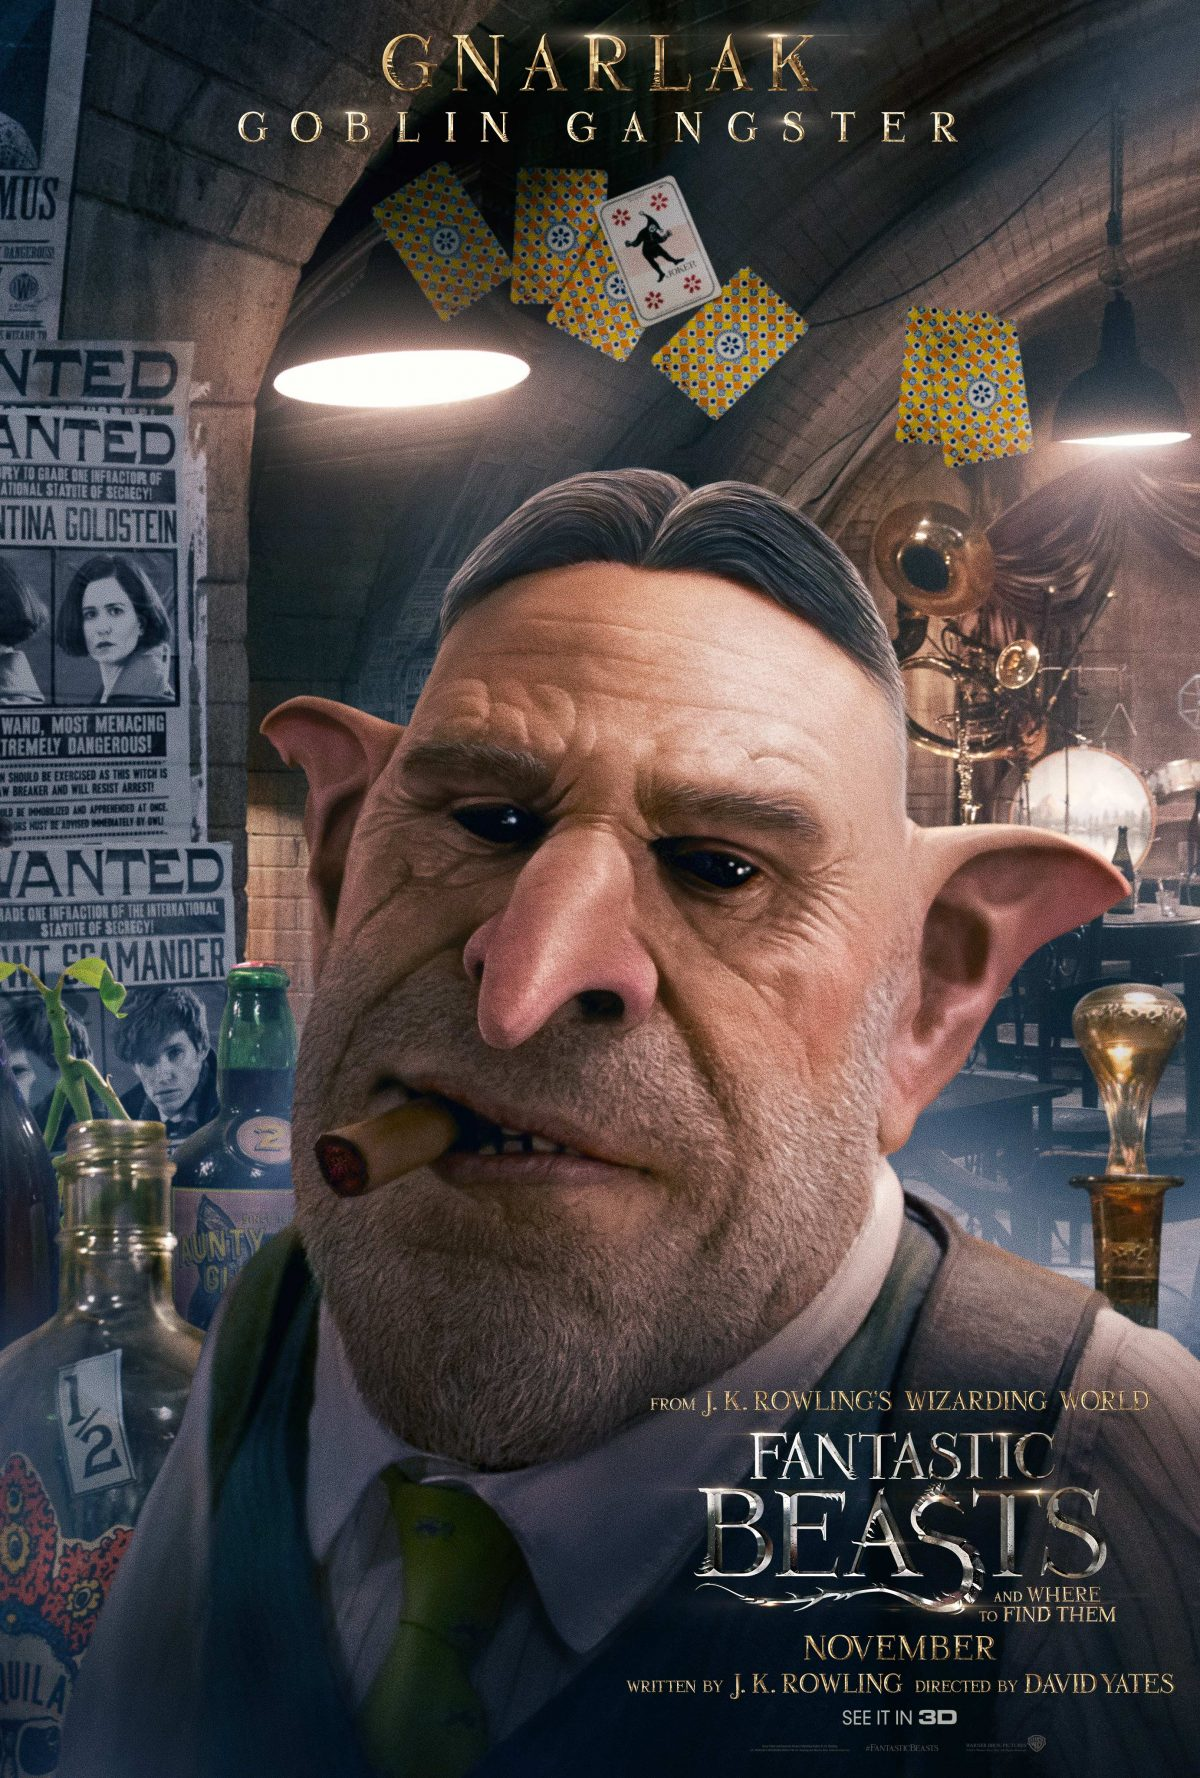 Meet the Characters for Fantastic Beasts in These New Movie Posters